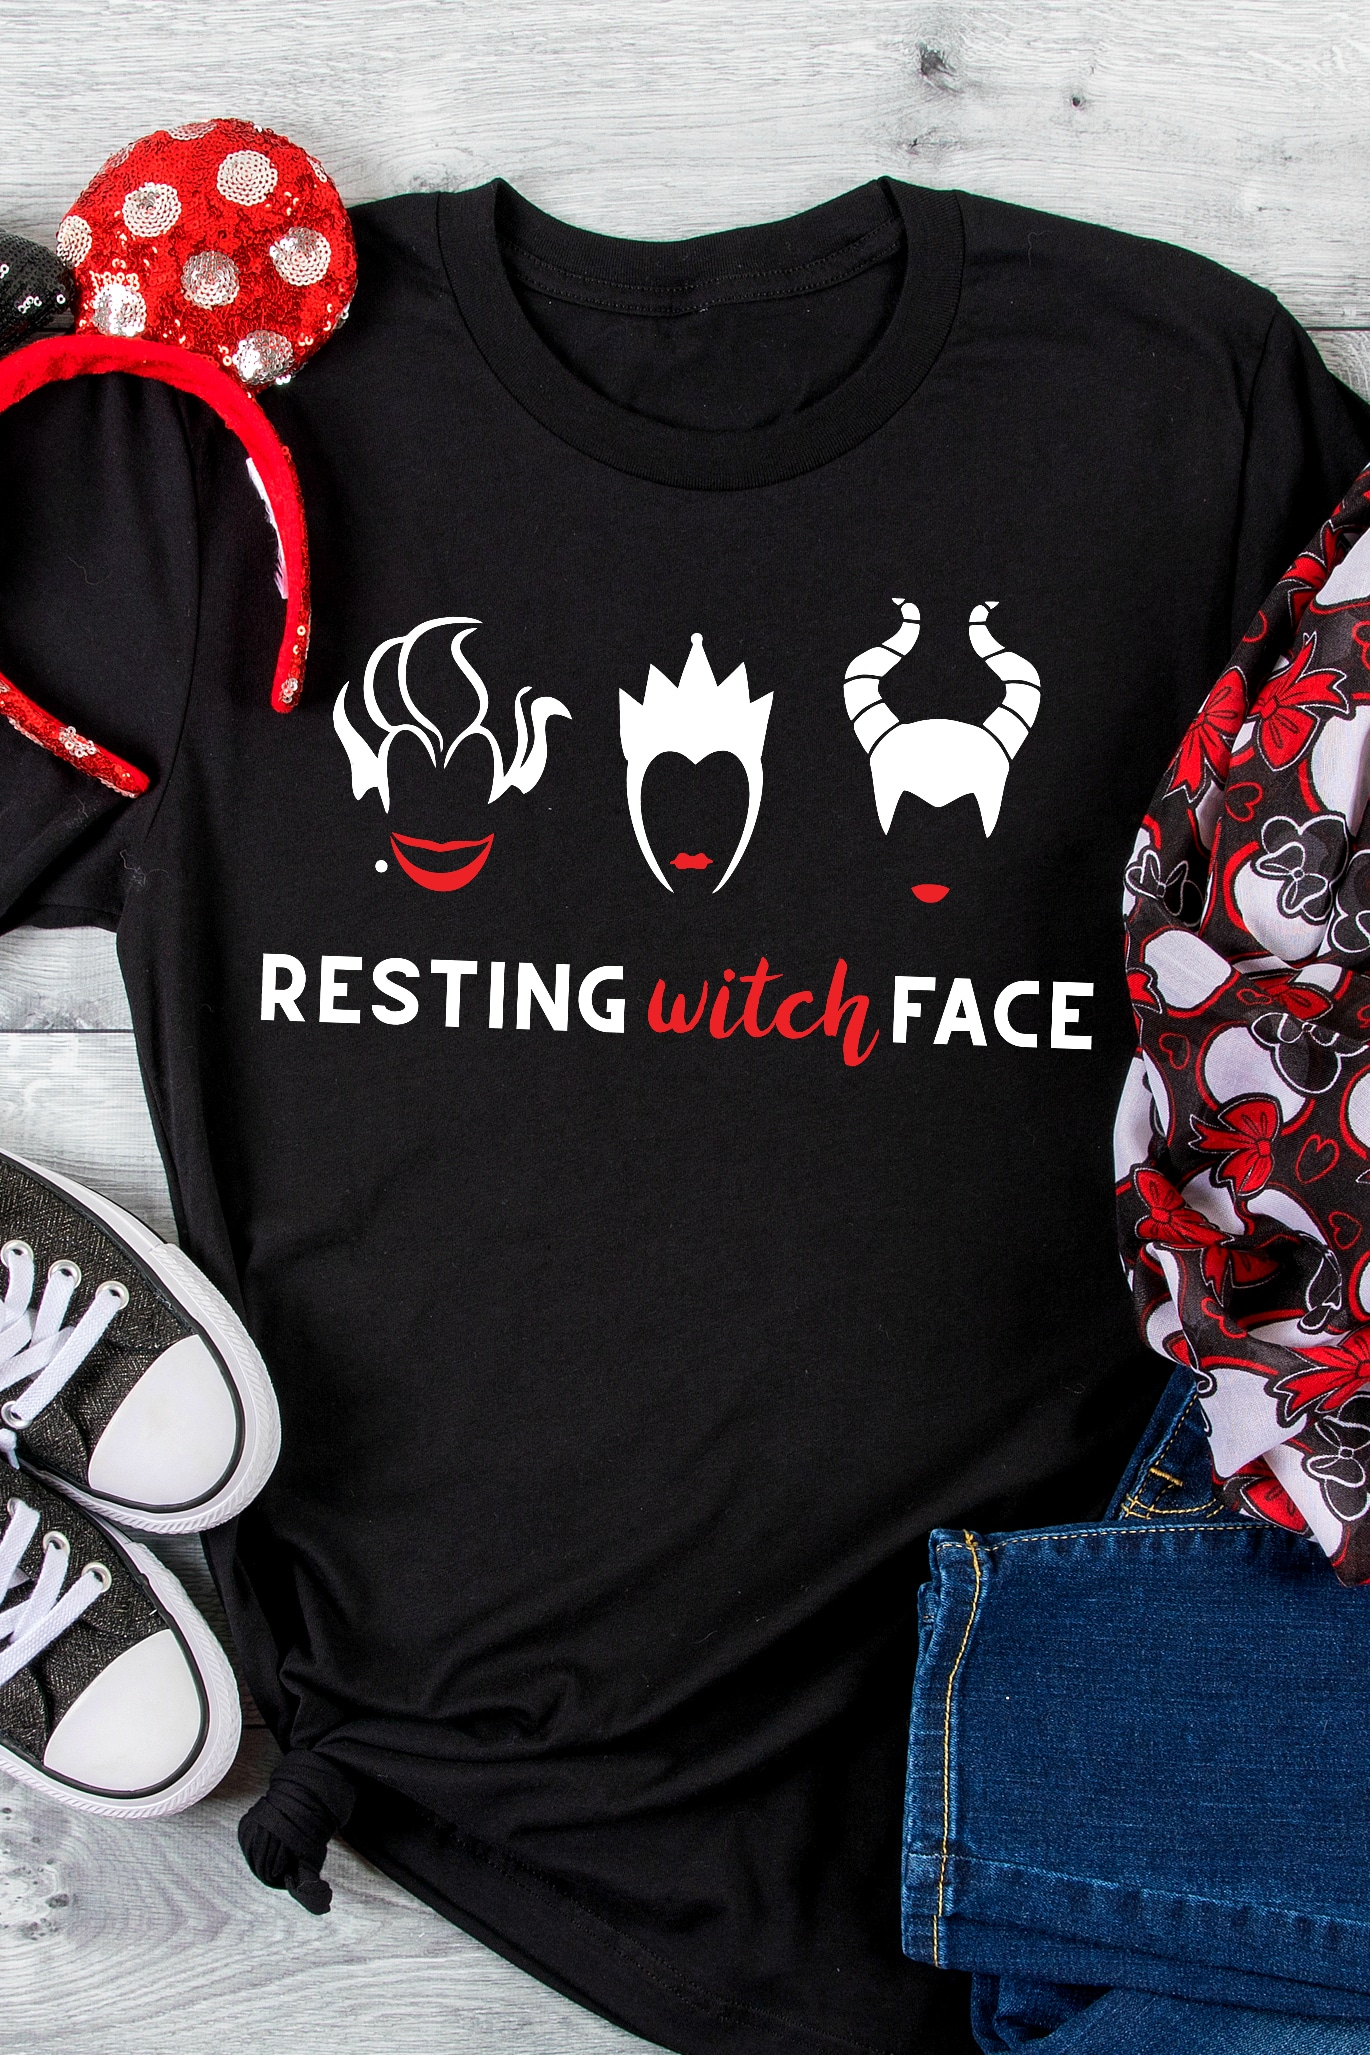 Black tshirt sits next to red and white sequined polka dot ears for Minnie Mouse and a black, red and white minnie scarf with a white and red vinyl design on it. Design says Resting Witch Face with faces of ursula, Evil Queen and Maleficent above the words.